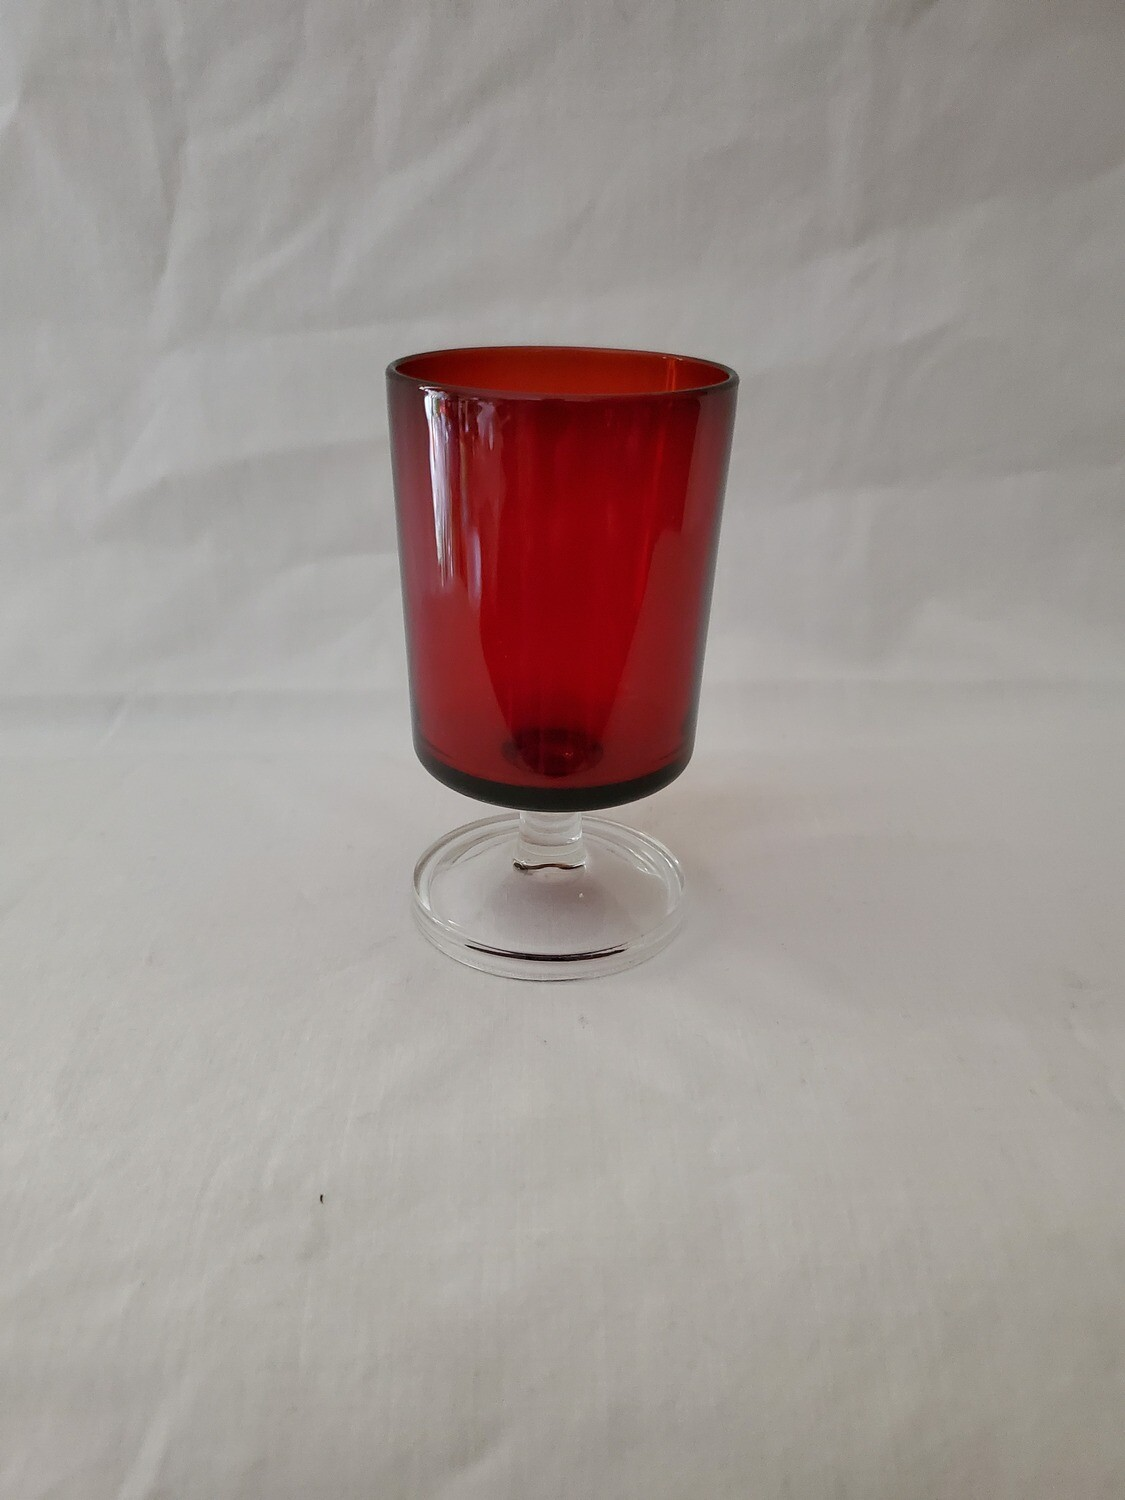 "Cavalier Ruby, Wine Glass 4 1/8"" by Cristal D'Arques-Durand"